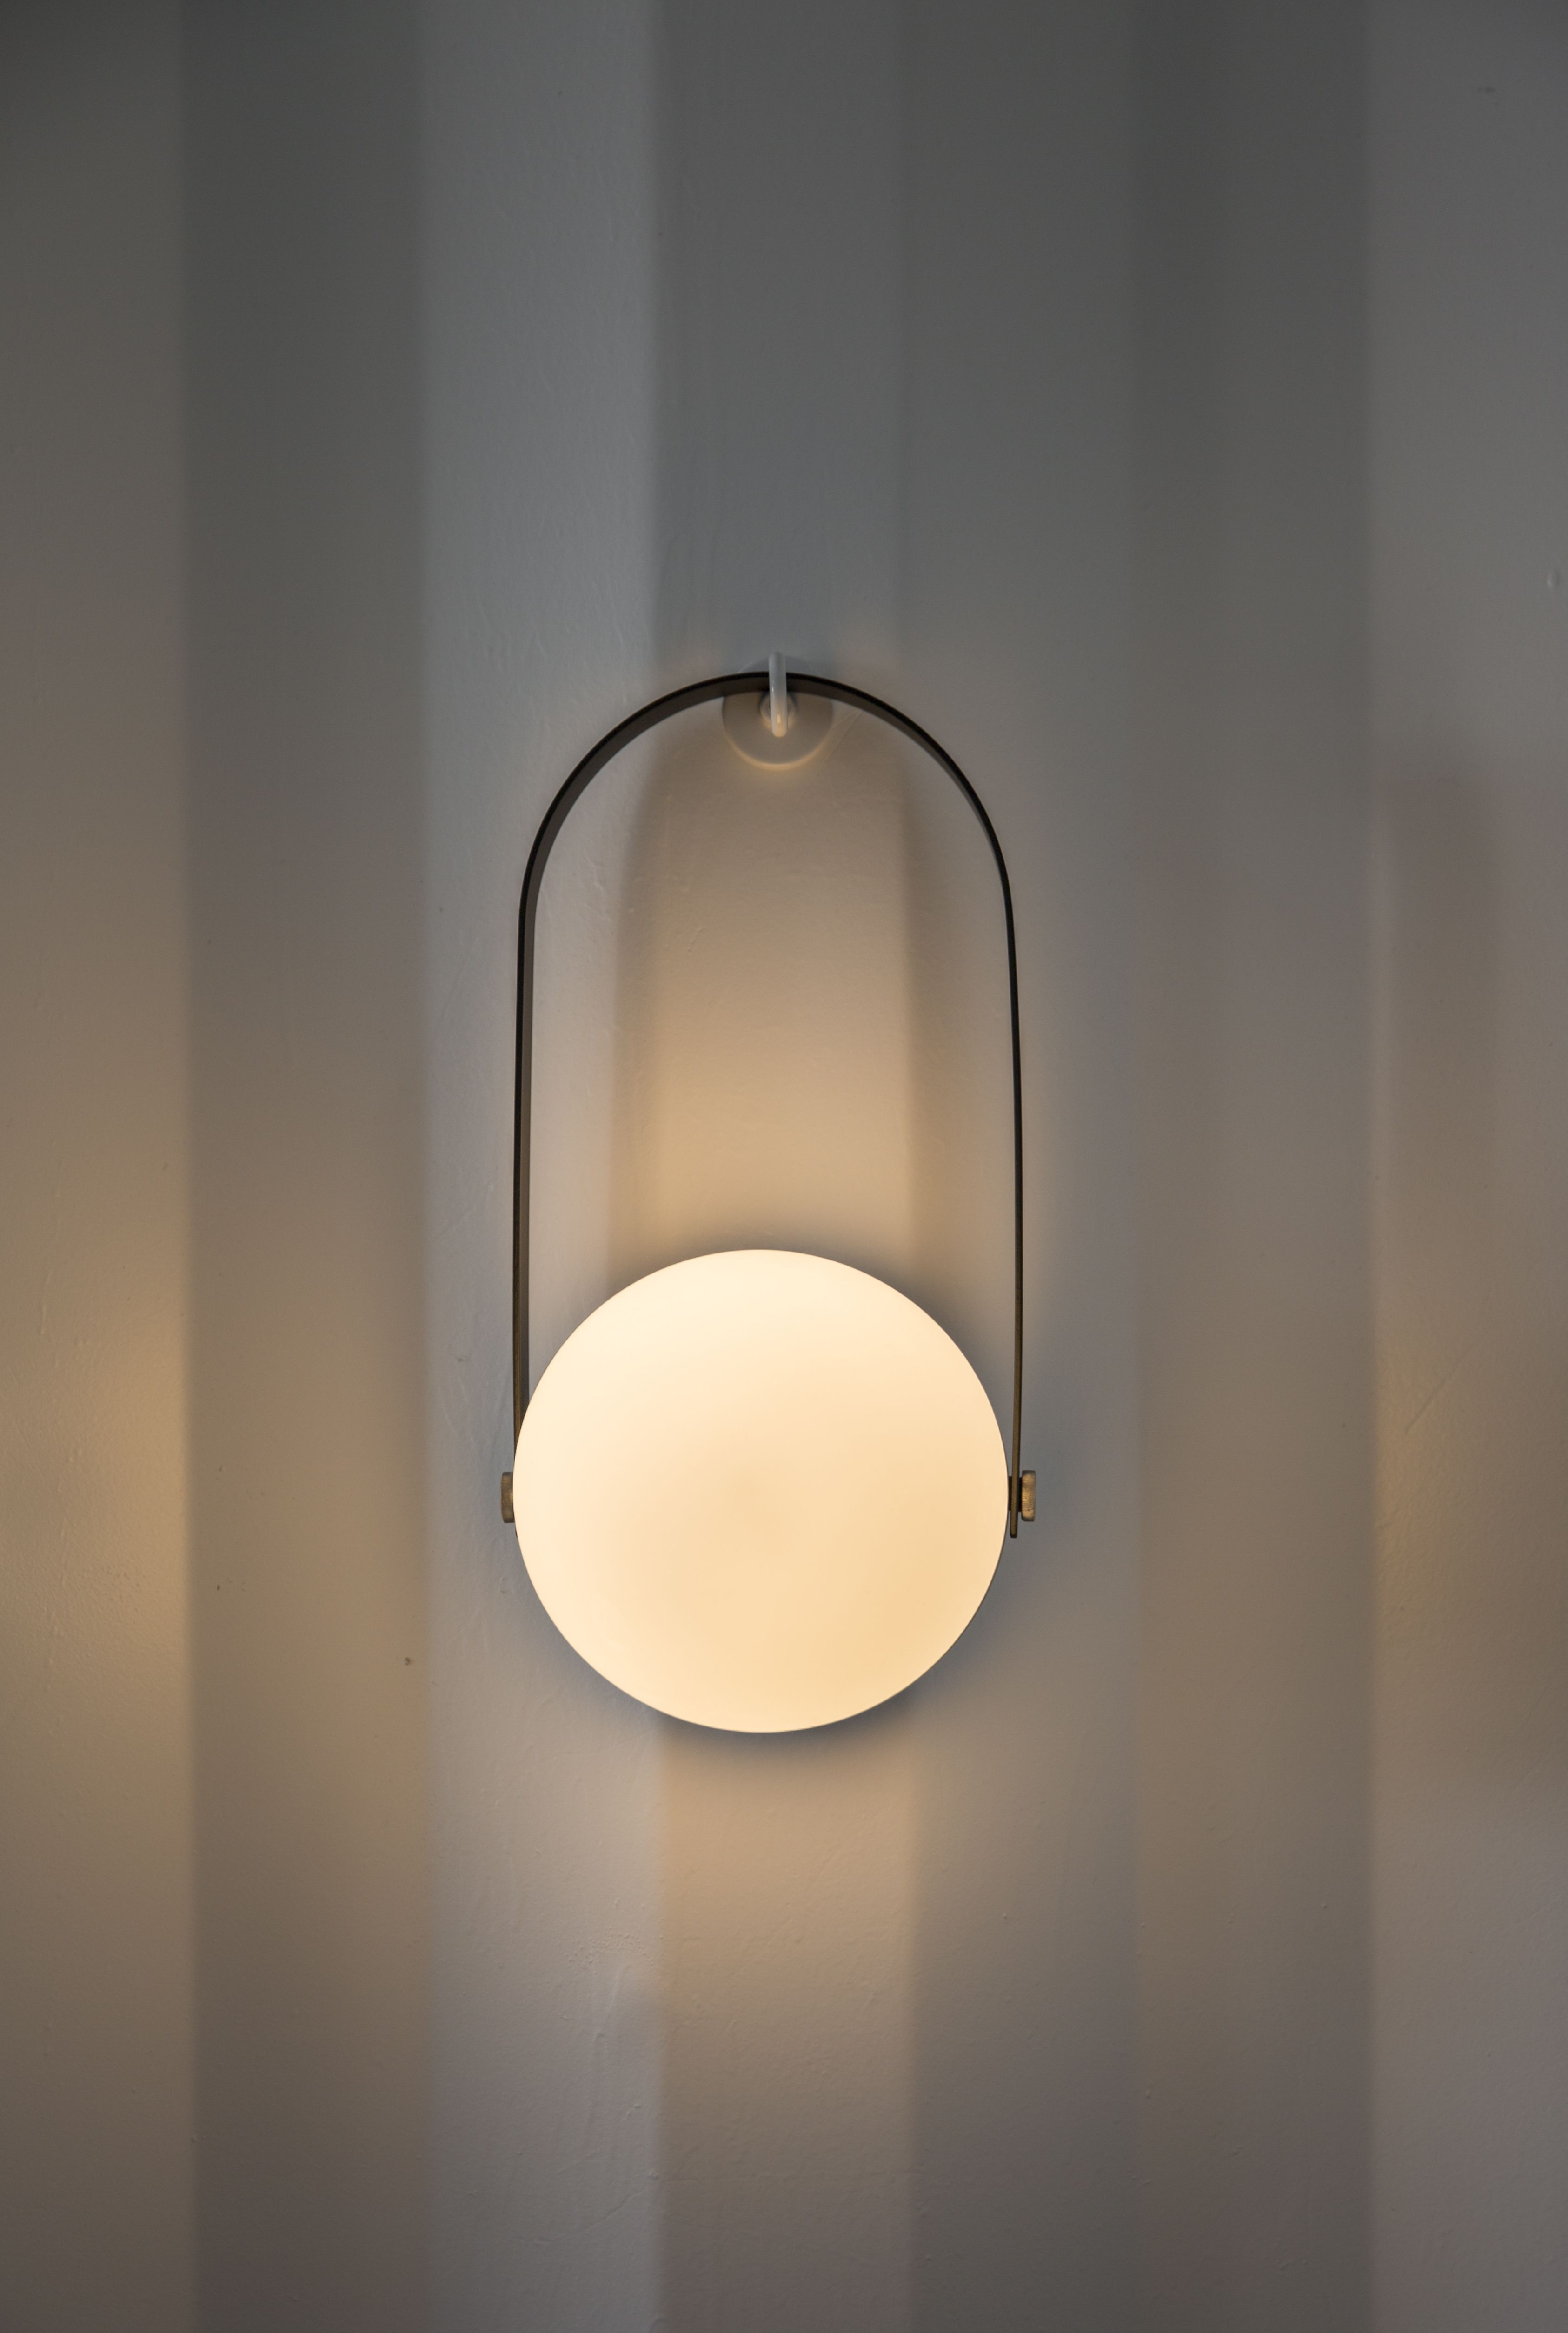 How To Make Your Modern Wall Lamps Look Amazing In Your Home Nastennye Svetilniki Osveshenie